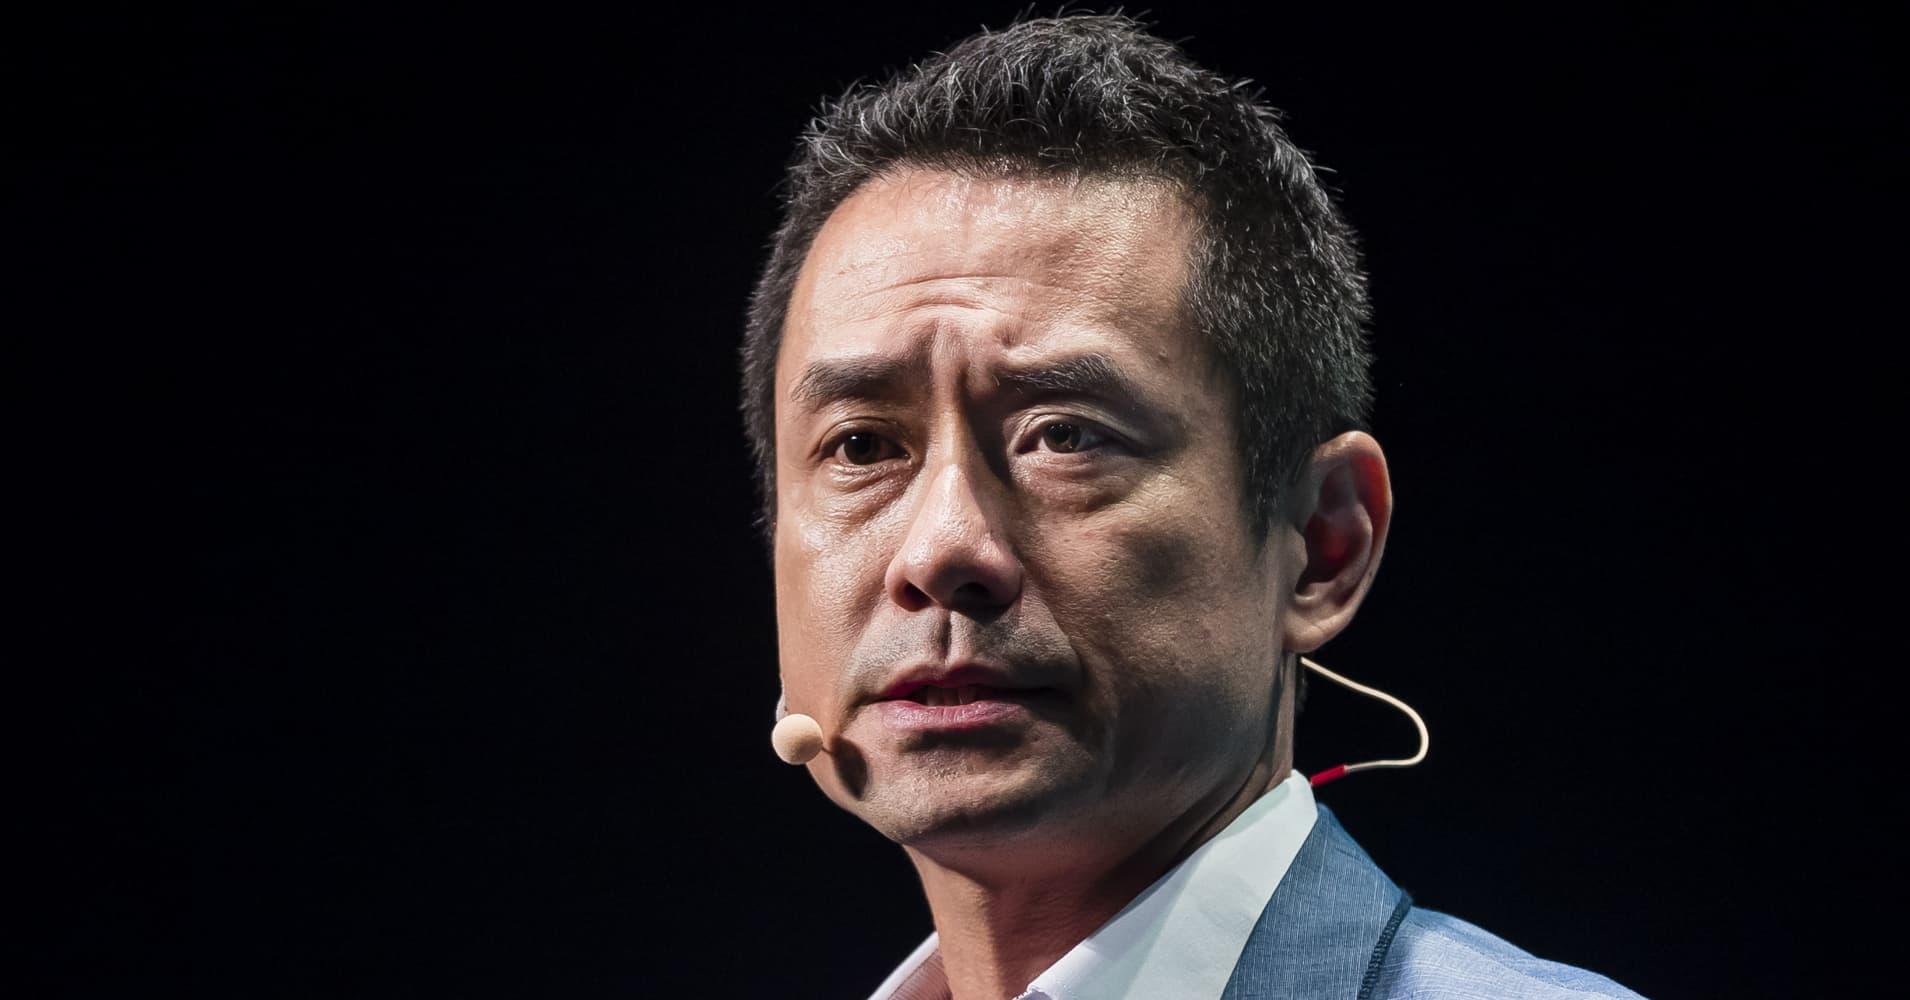 Ping An Technology CEO expects 'exponential' growth in fintech